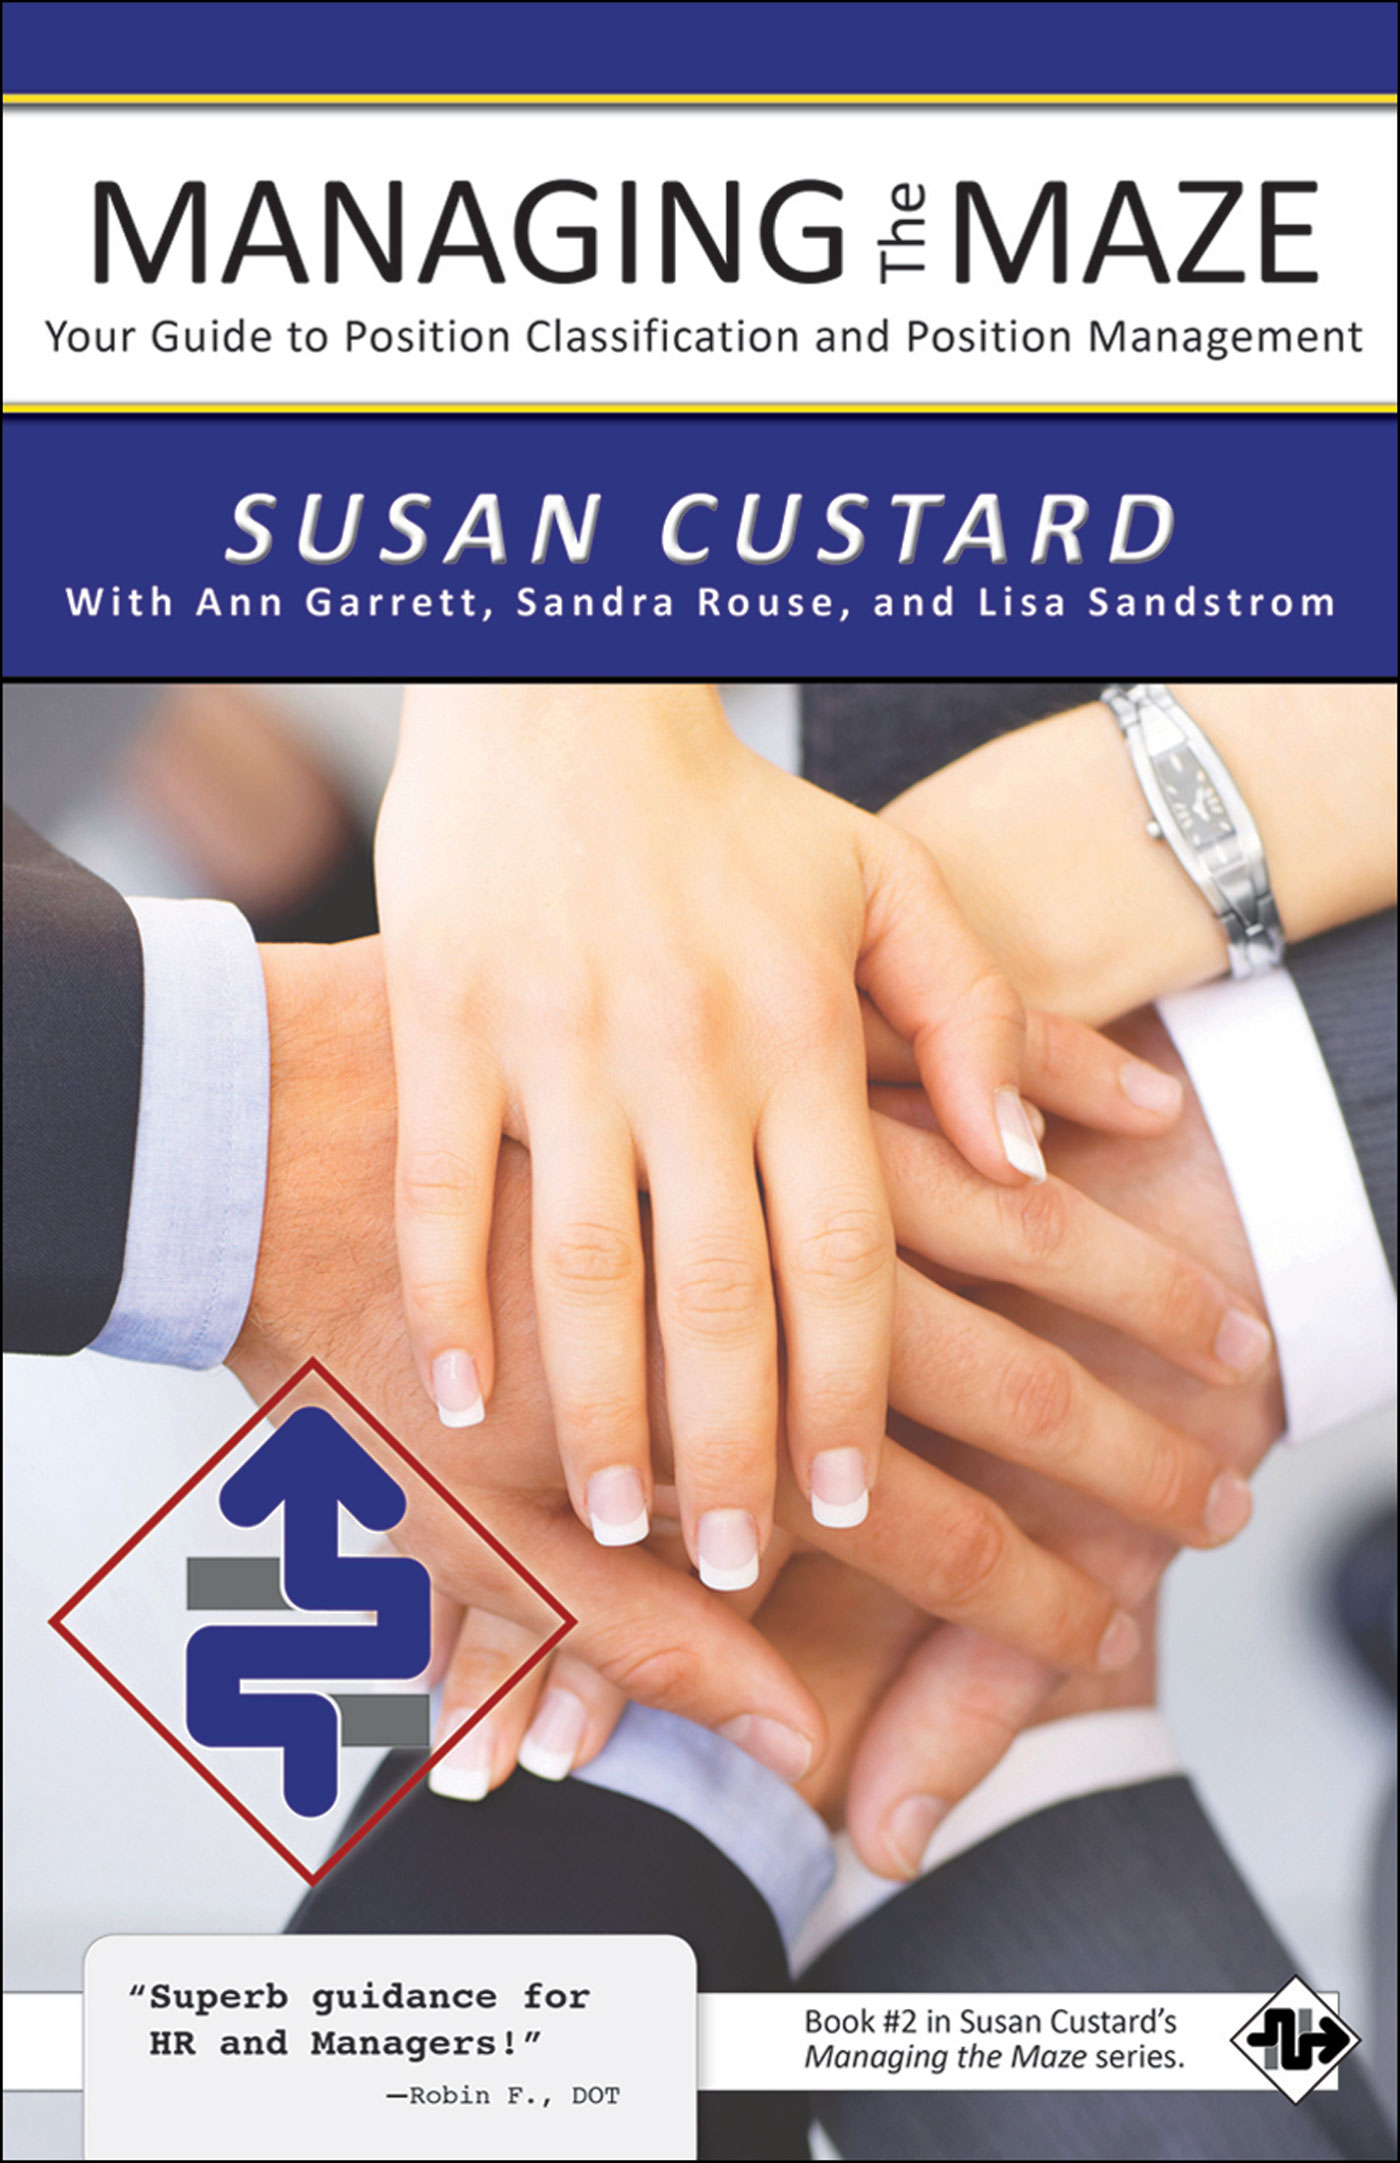 guide, management, position, classification, susan, custard, susan custard